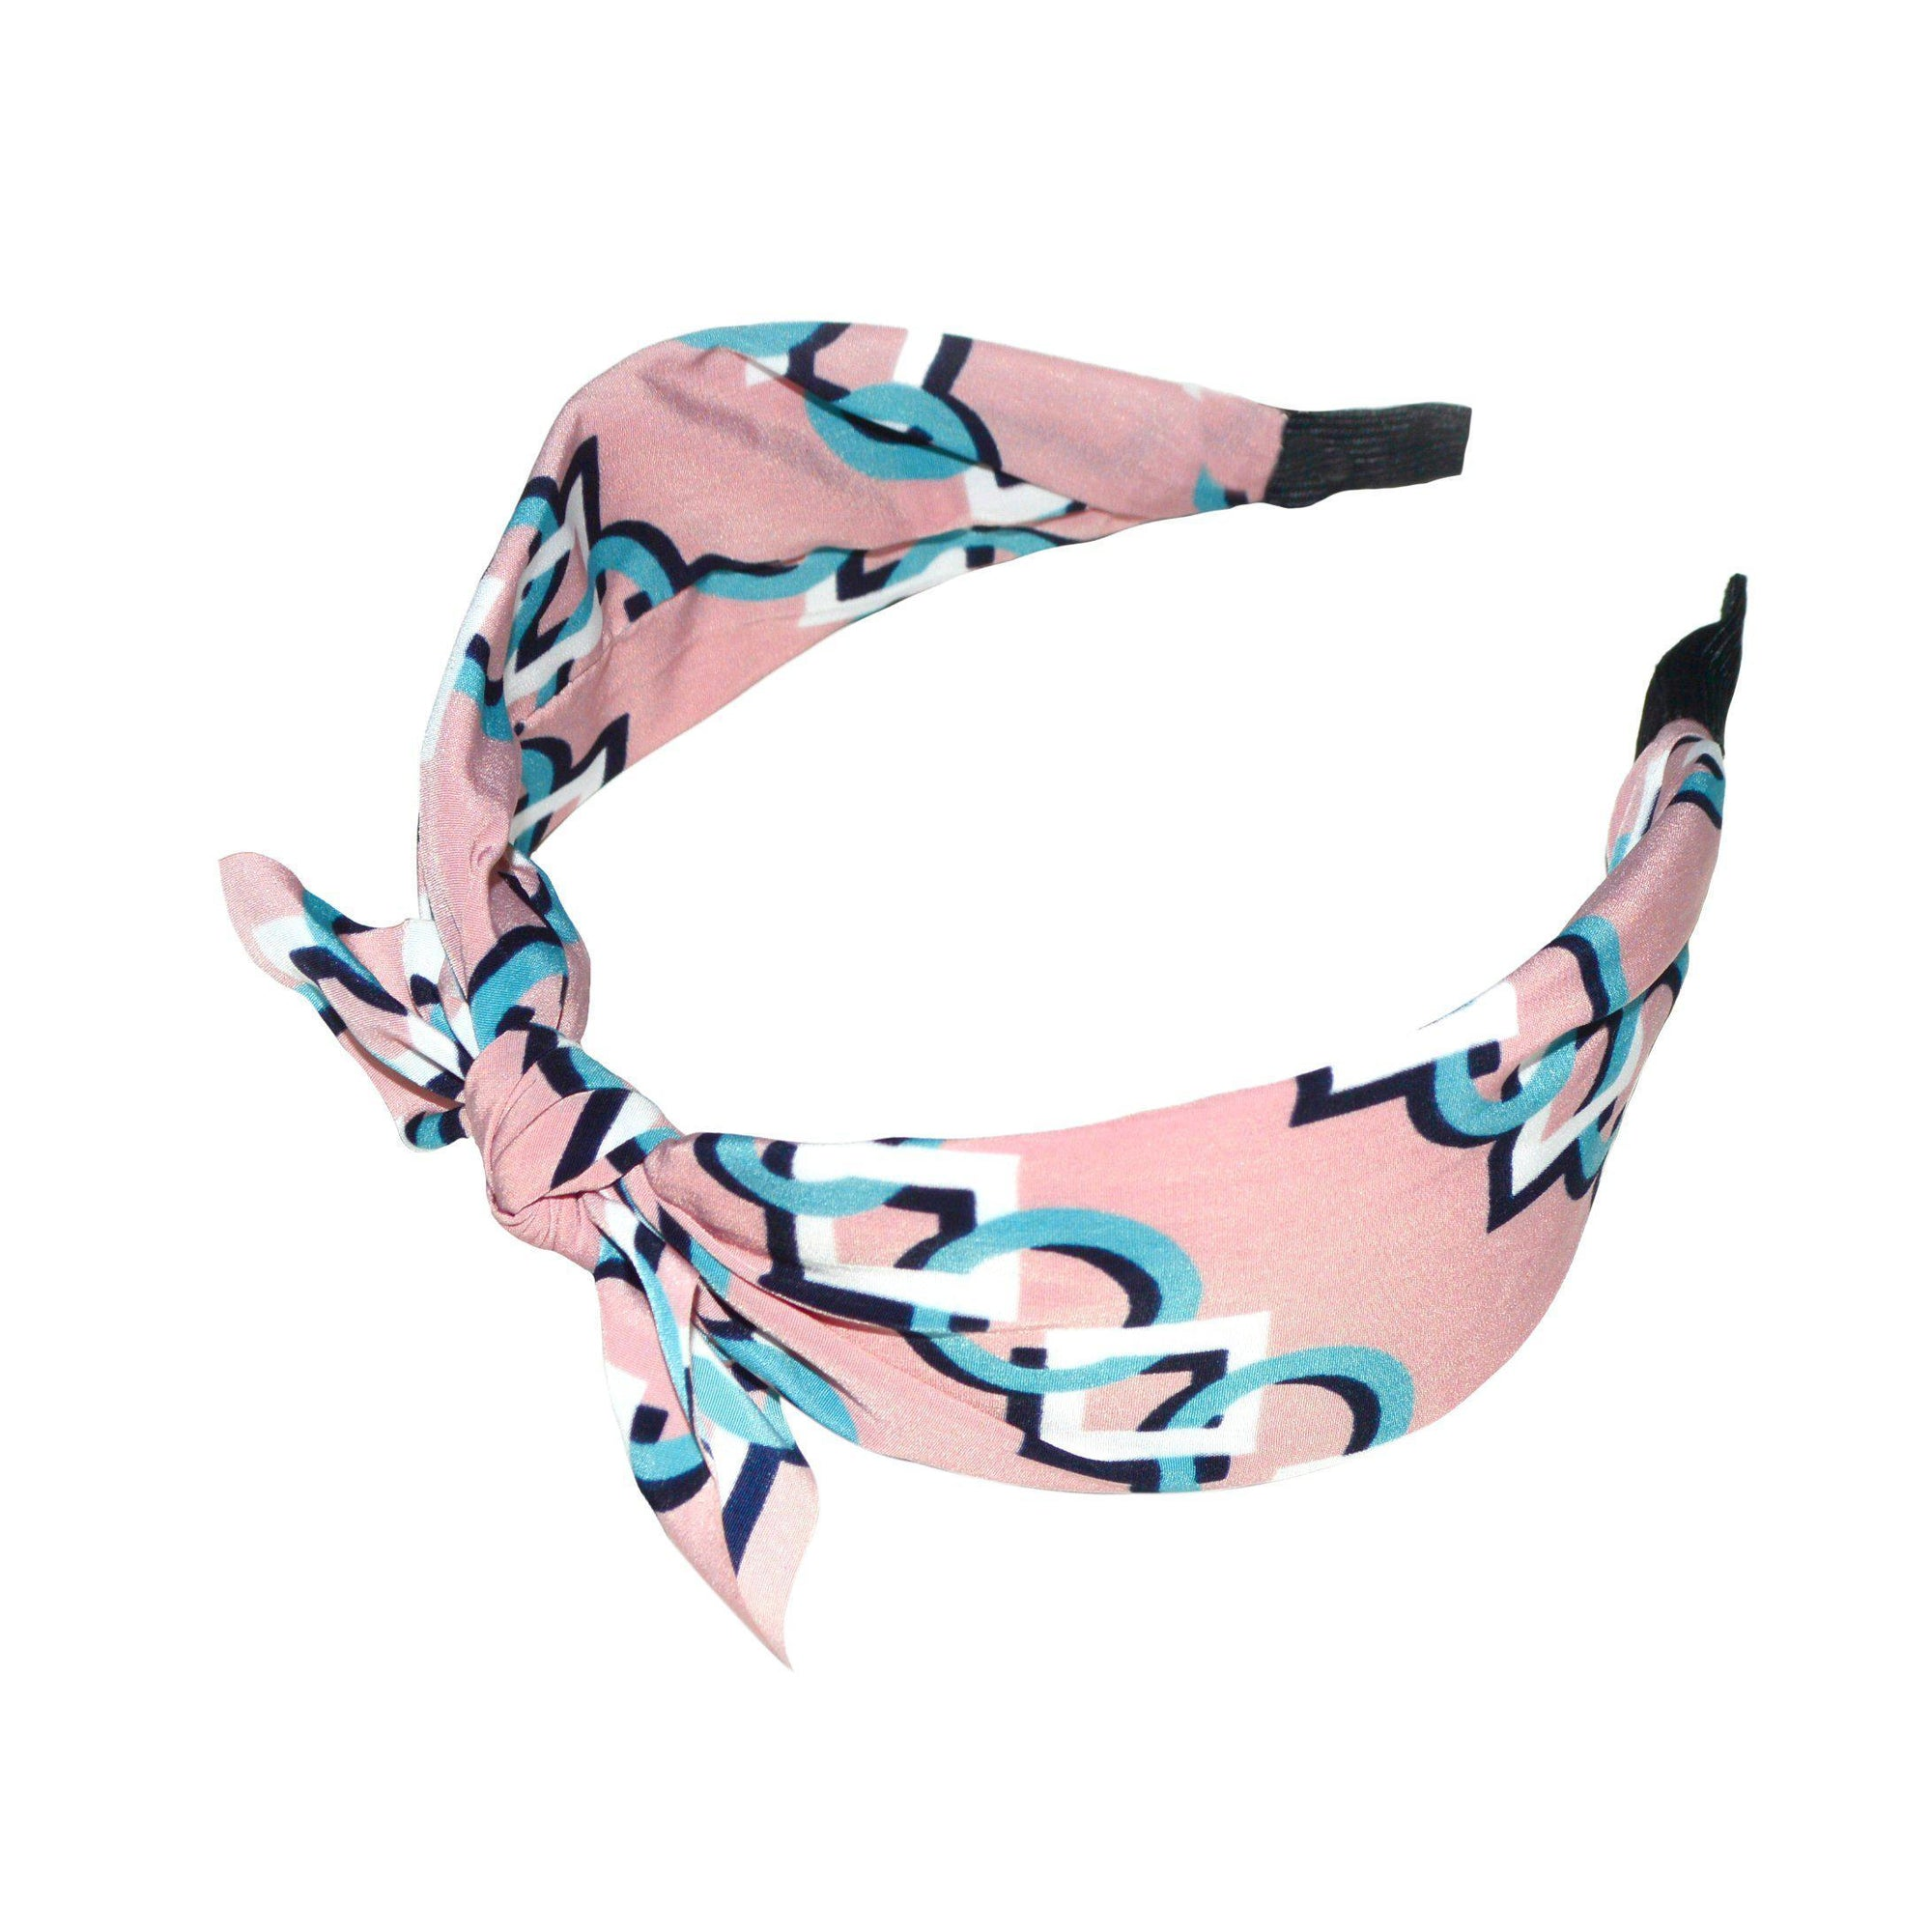 Handmade Geometric Chain Headband-Headbands-Tegen Accessories-Pink-Tegen Accessories